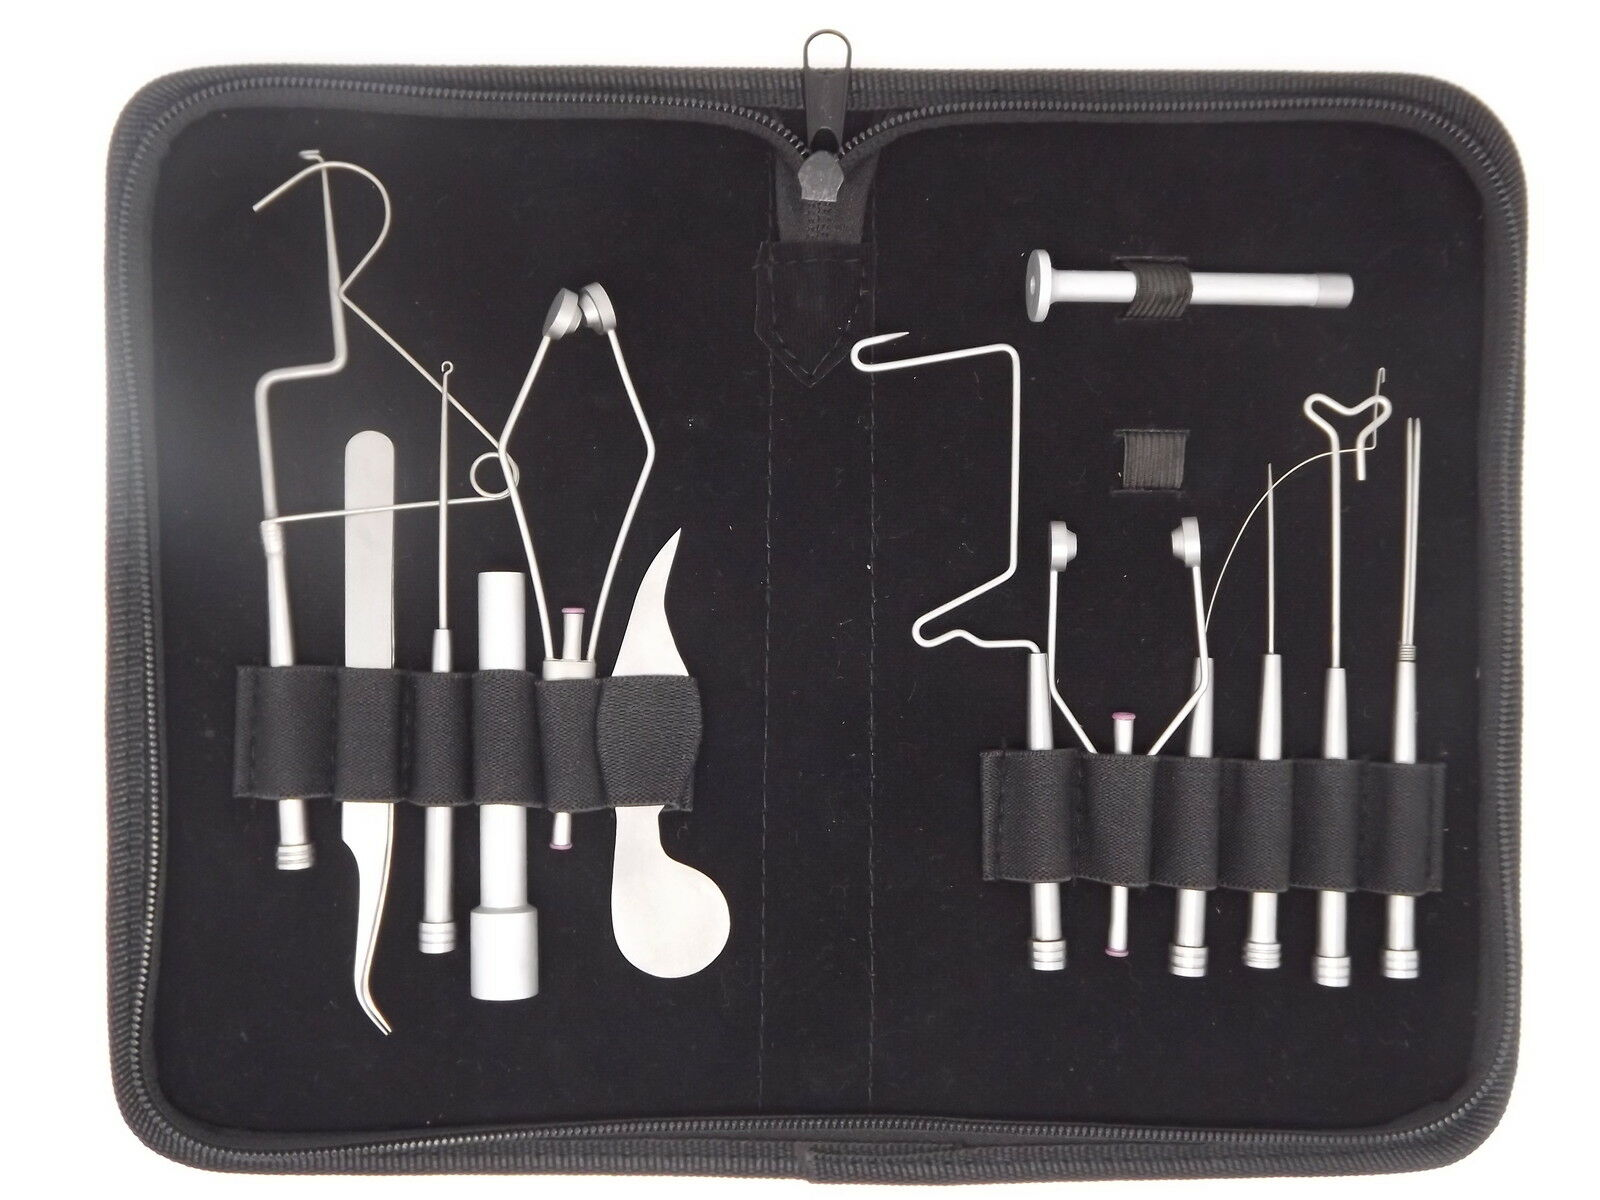 SVV-CLASSIC FLY TYING TOOL KITS   incredible discounts